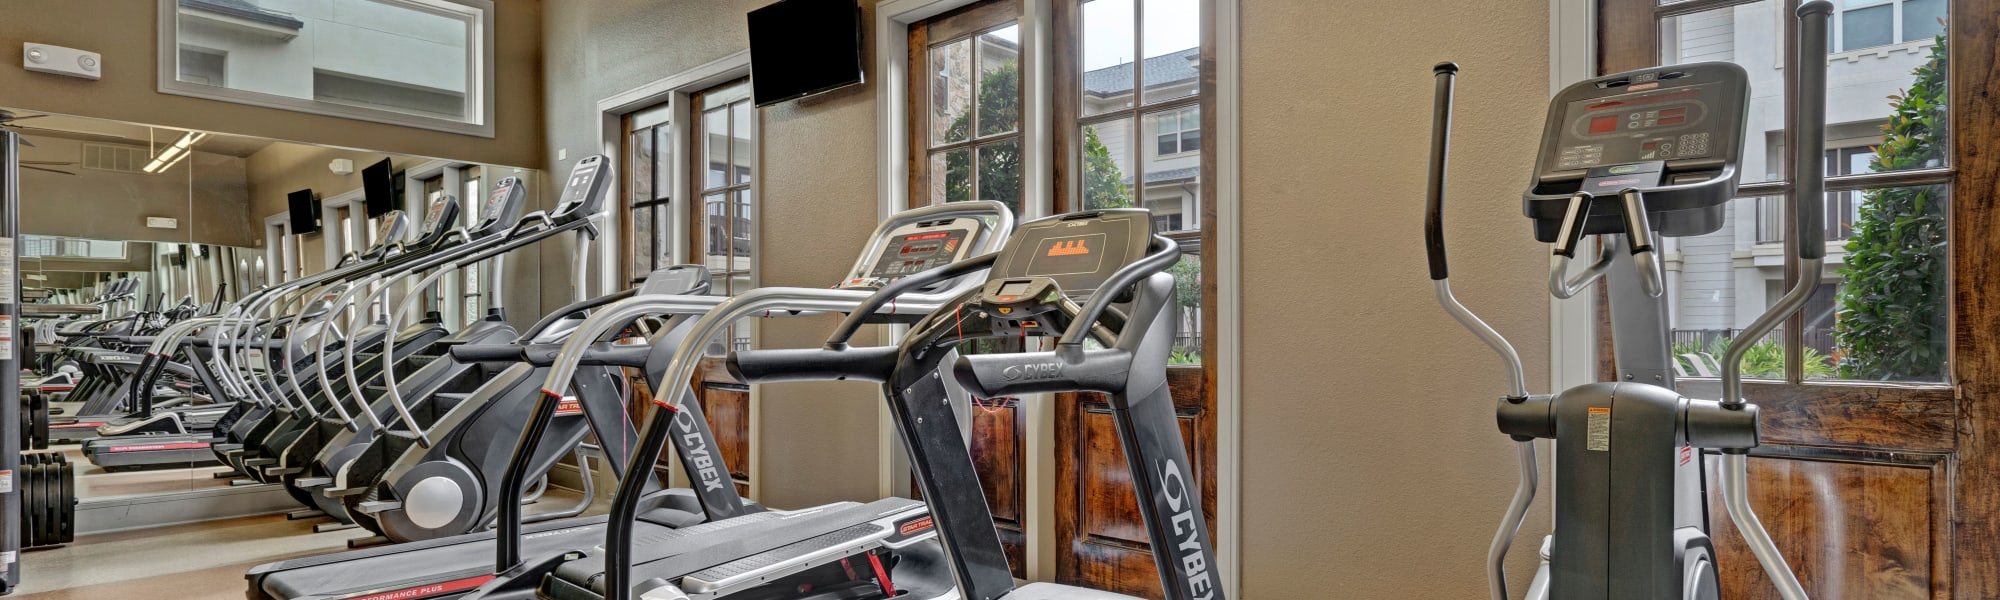 Amenities at Arrabella in Houston, Texas